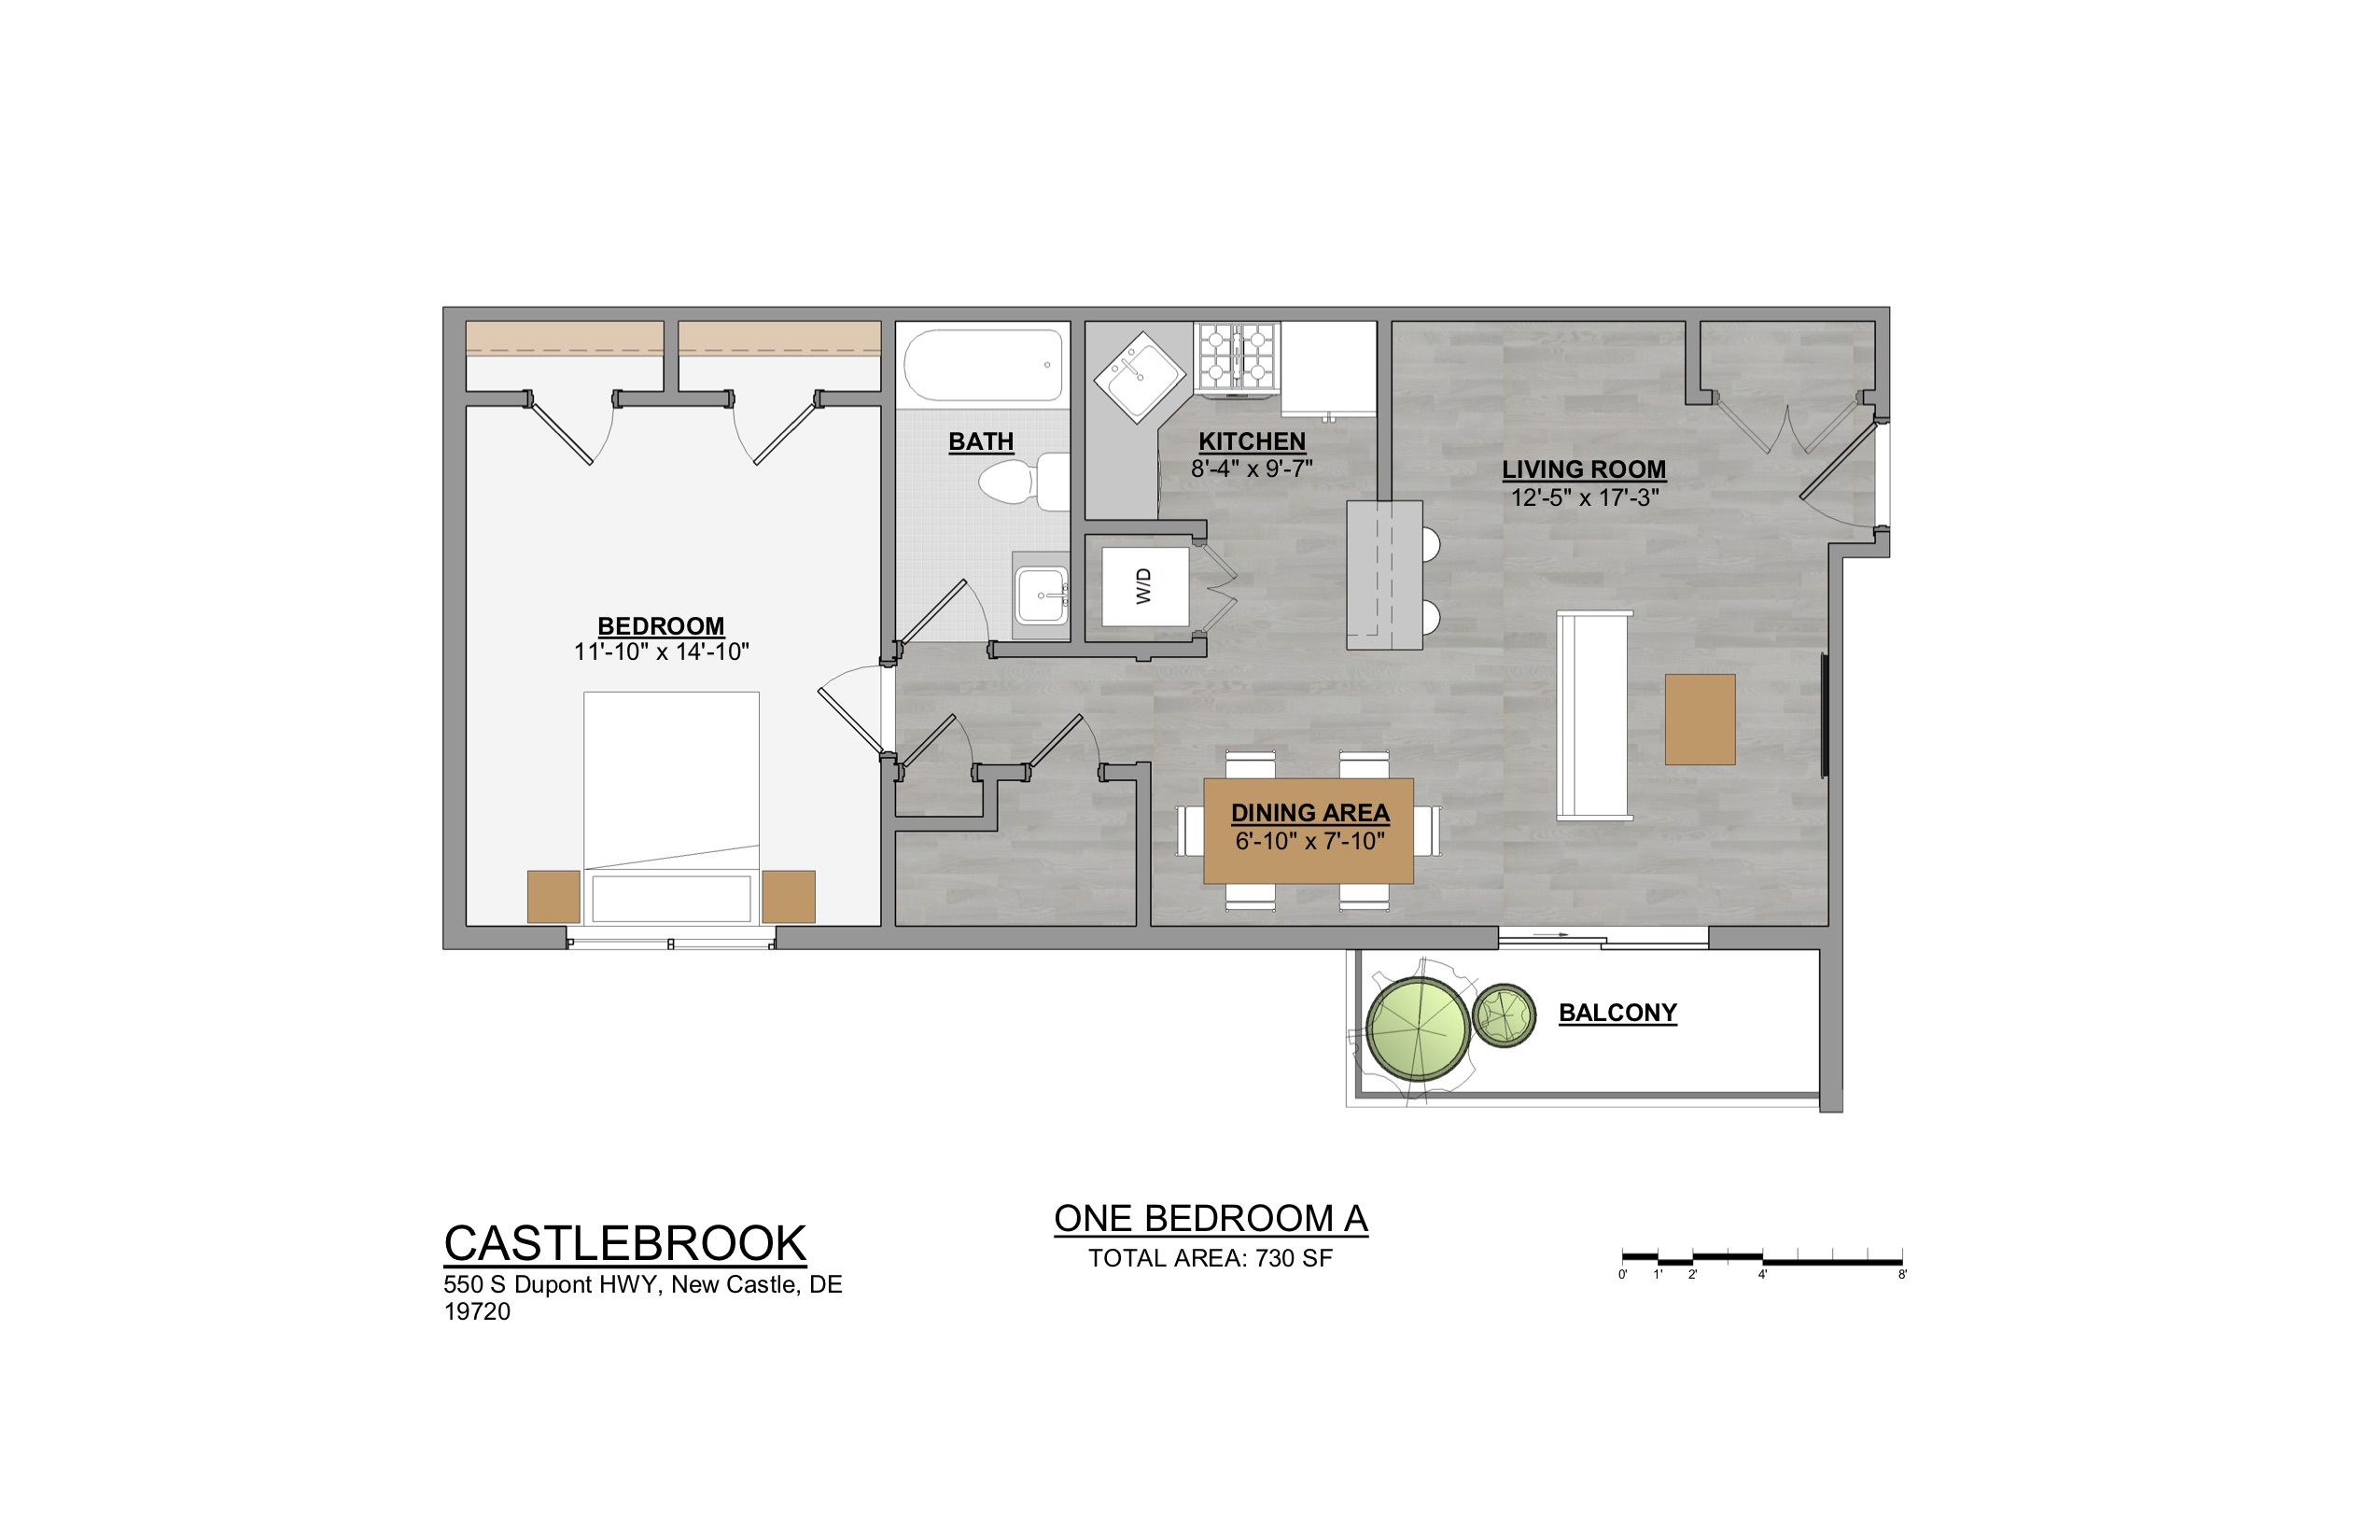 1-bedroom New Castle apartment floor plan for rent at Castlebrook Apartments